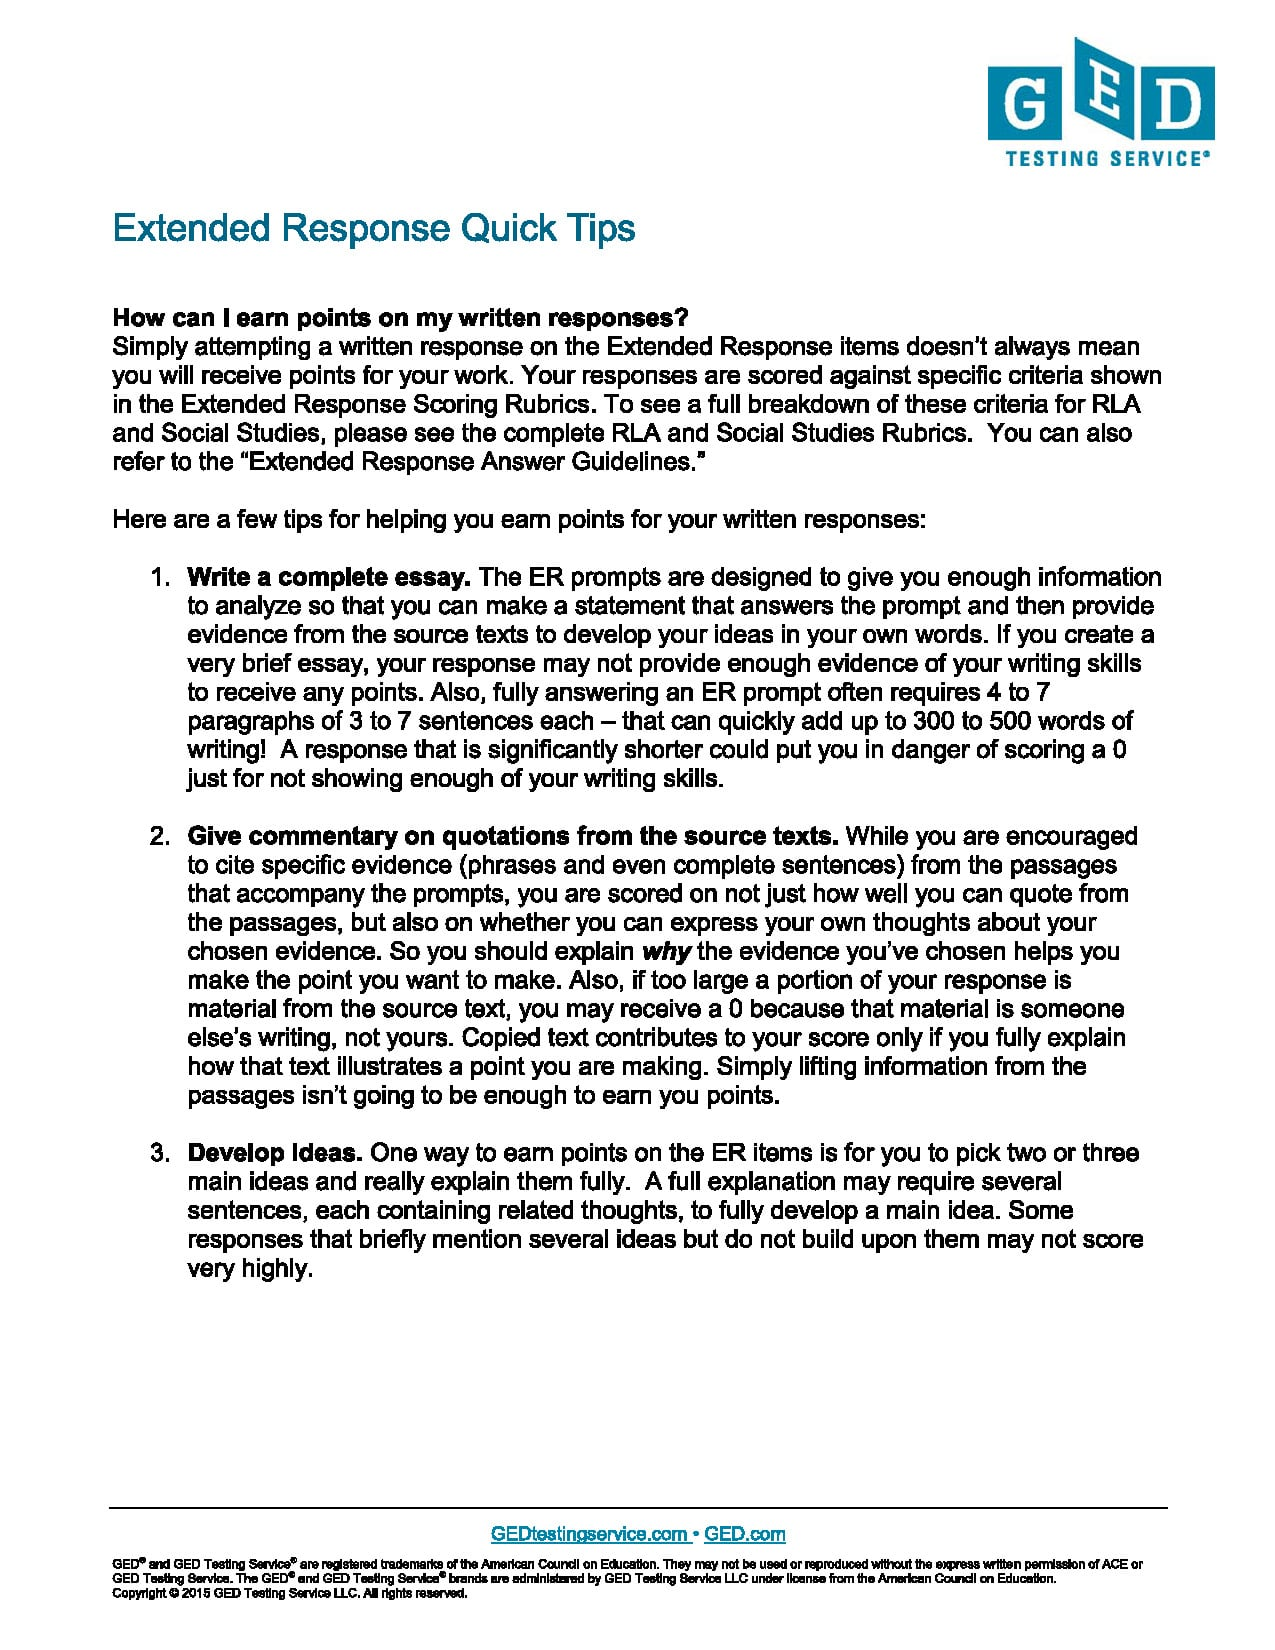 ged essay test tips The revised general educational development (ged) tests introduced in 1988 require higher-level analytical skills of examinees than previous tests the most immediate revision is the writing skills test, which requires examinees to demonstrate writing ability this guide provides the ged student .